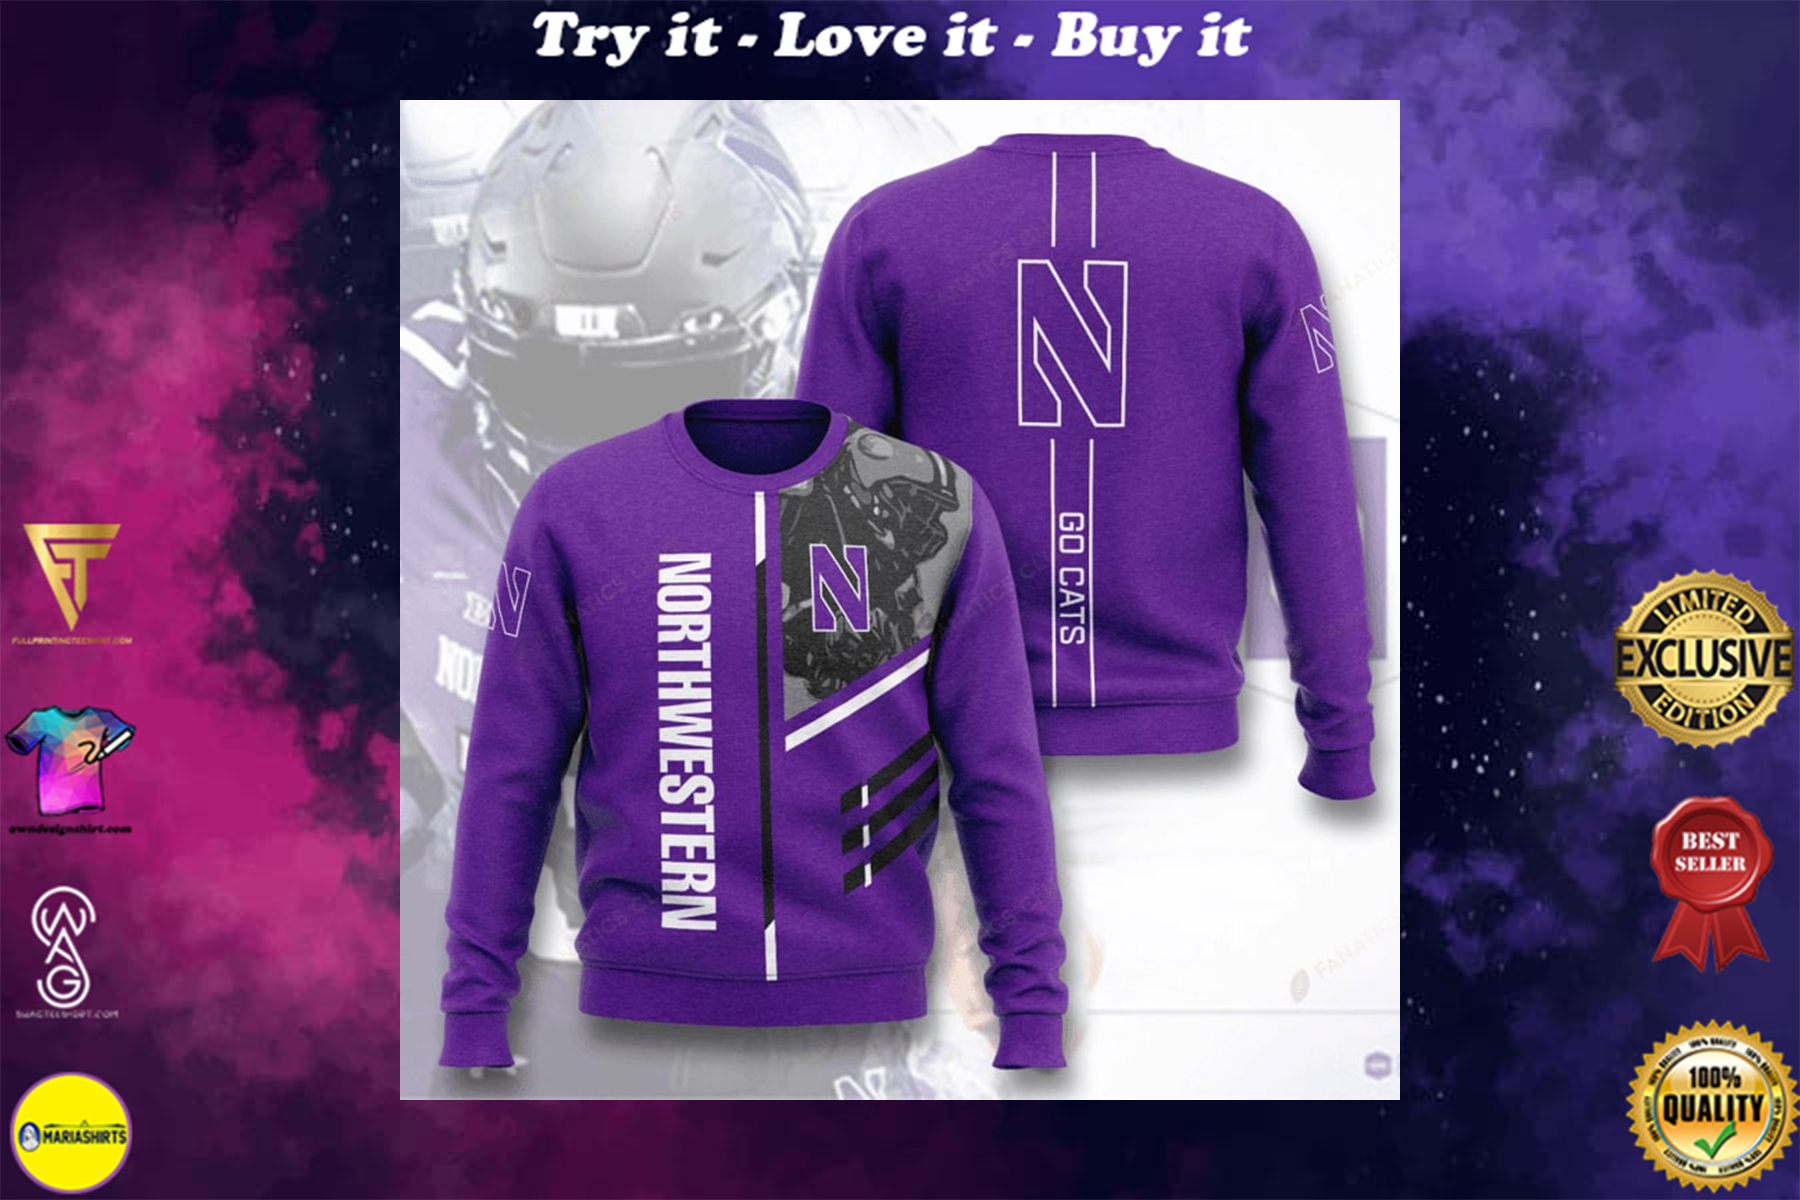 [special edition] northwestern wildcats football go cats full printing ugly sweater - maria